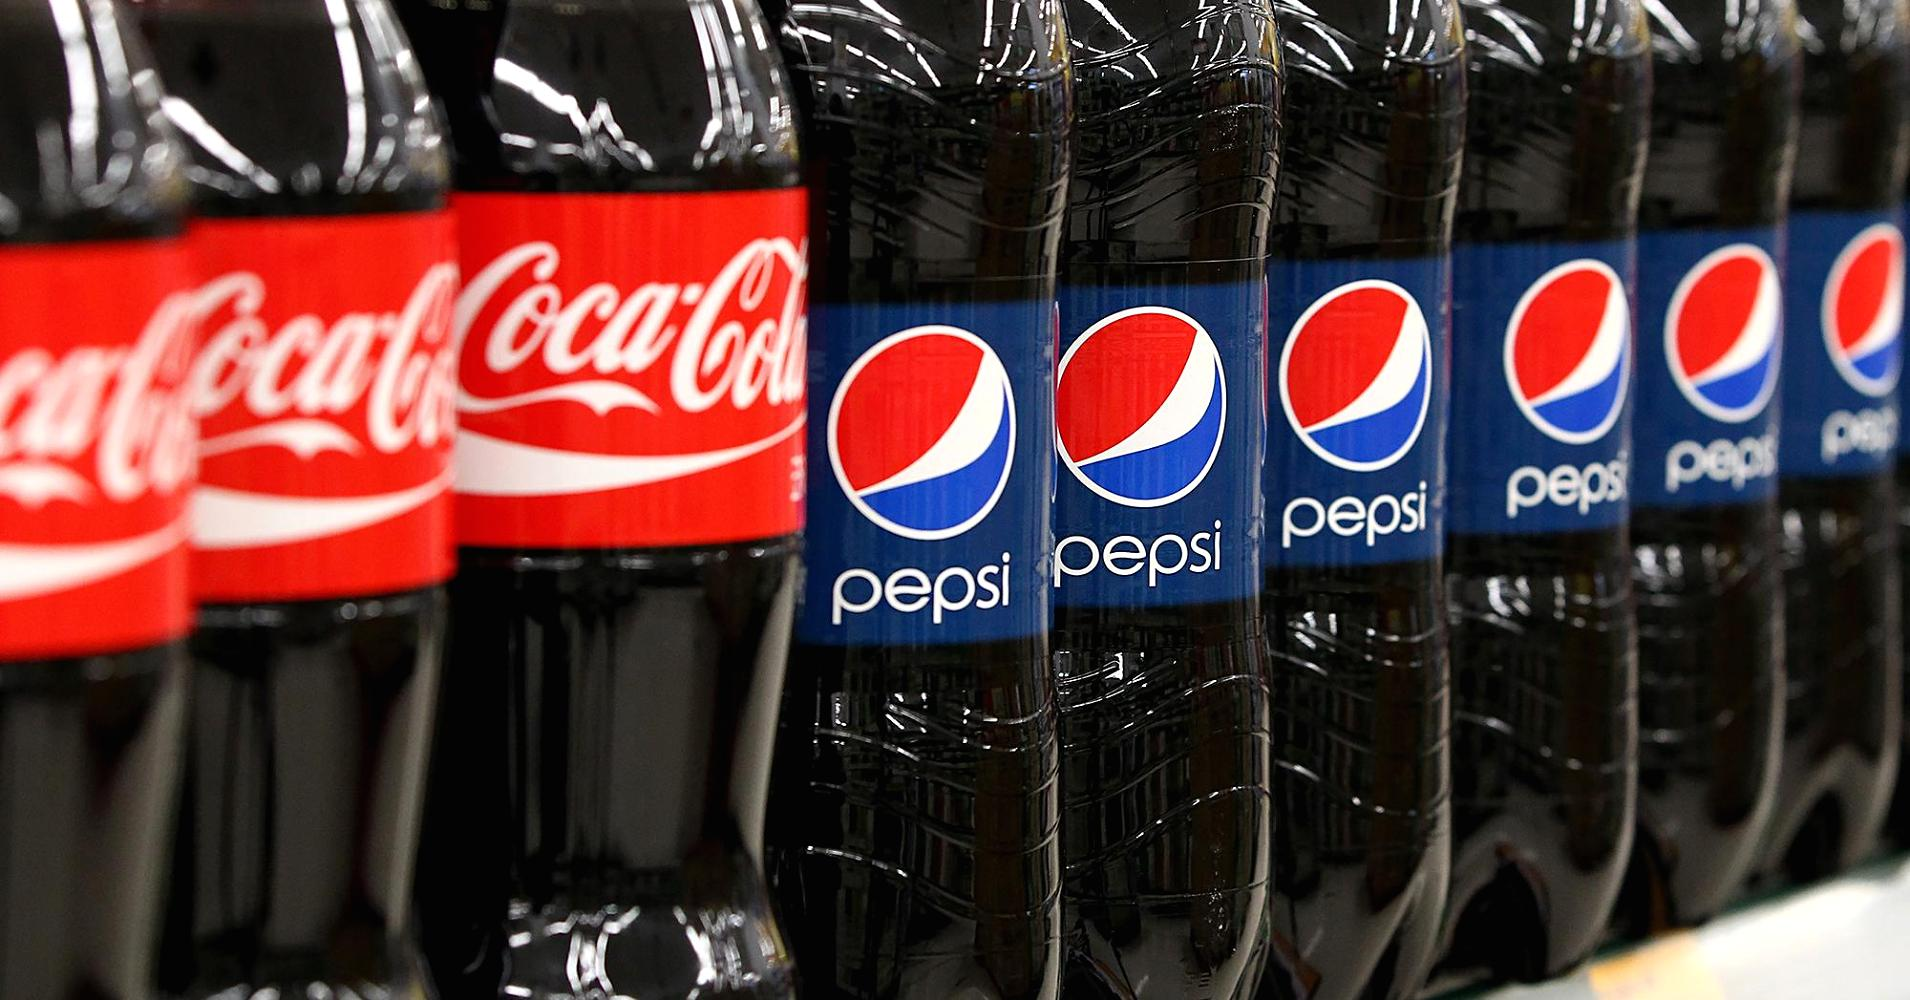 a look at the market battles between coke and pepsi in russia